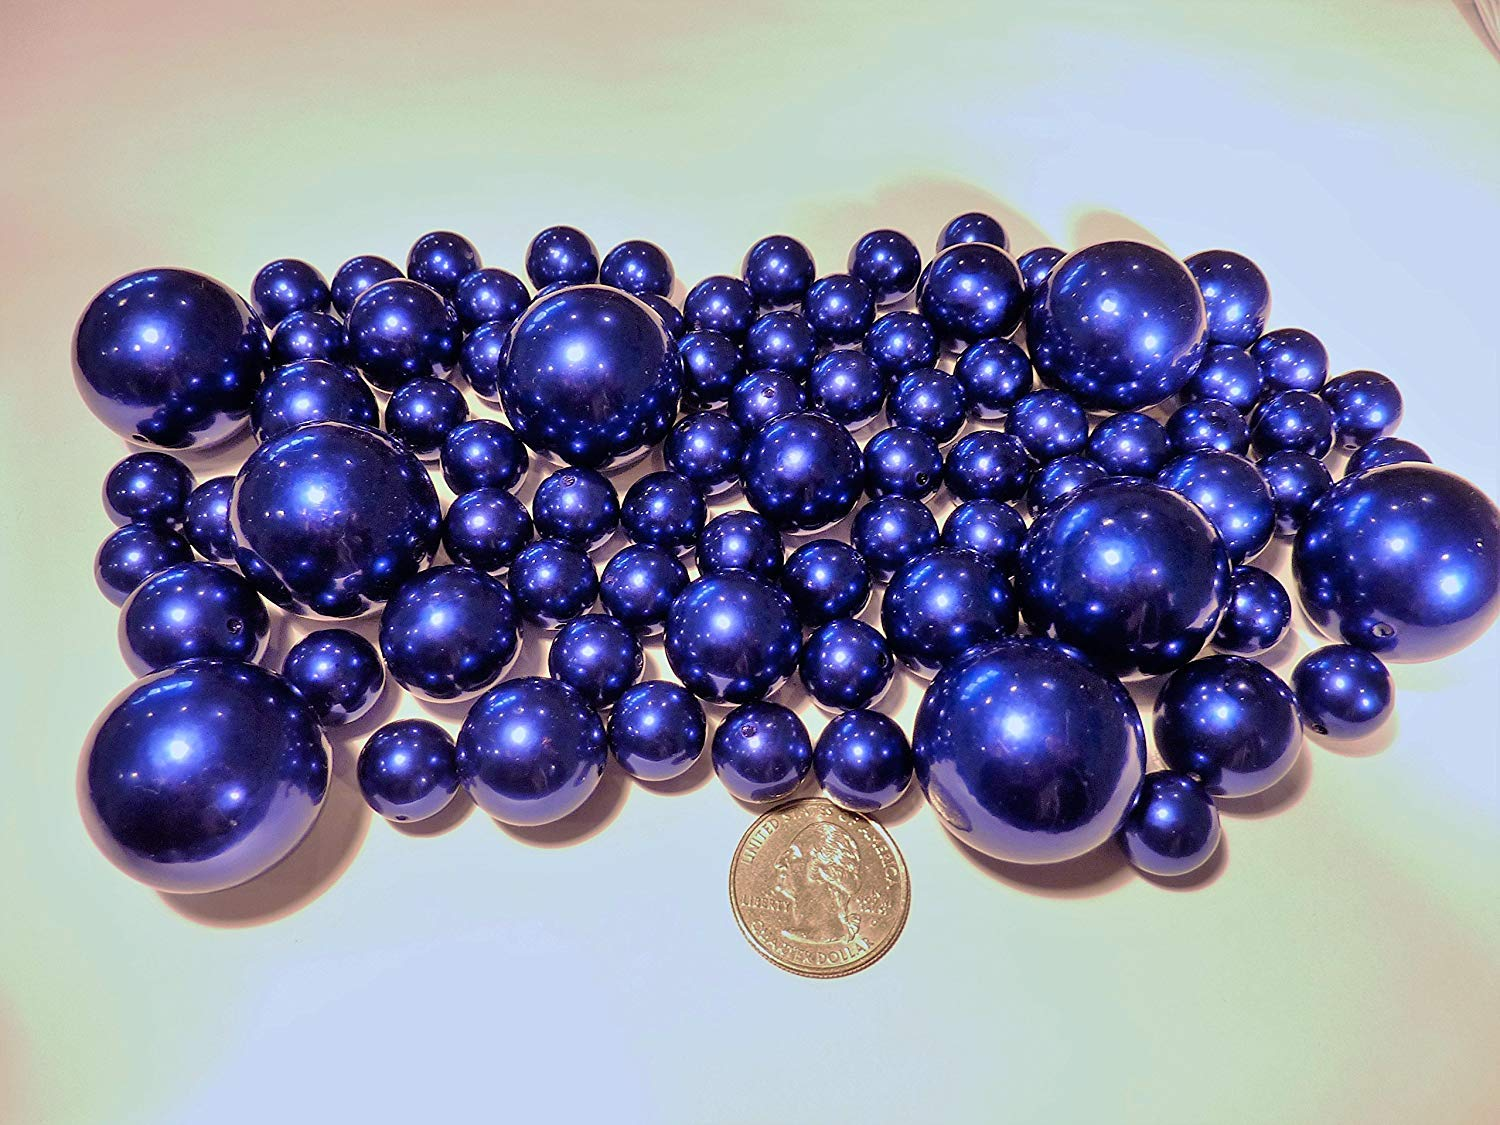 80 Royal Blue/Navy Pearls - Jumbo and Assorted Sizes Vase Fillers for Decorating Centerpieces - to Float The Pearls Order with Transparent Water Gels